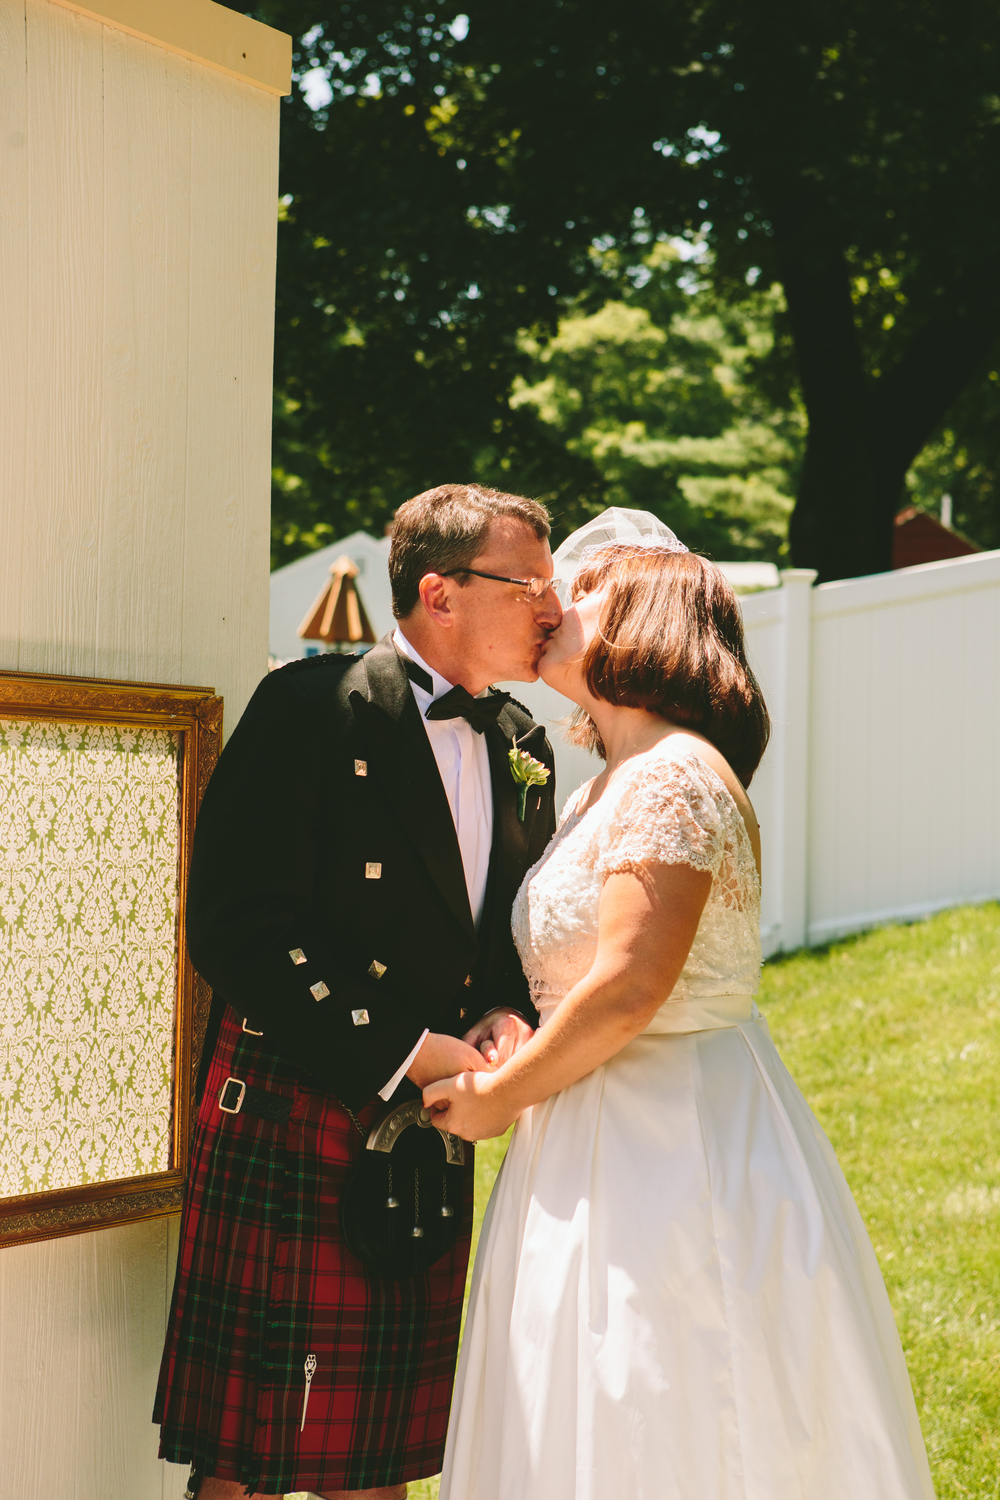 KAREN AND JERRY'S WEDDING_JULY 11TH 2015_BRIAN SAMUELS PHOTOGRAPHY - 64.jpg